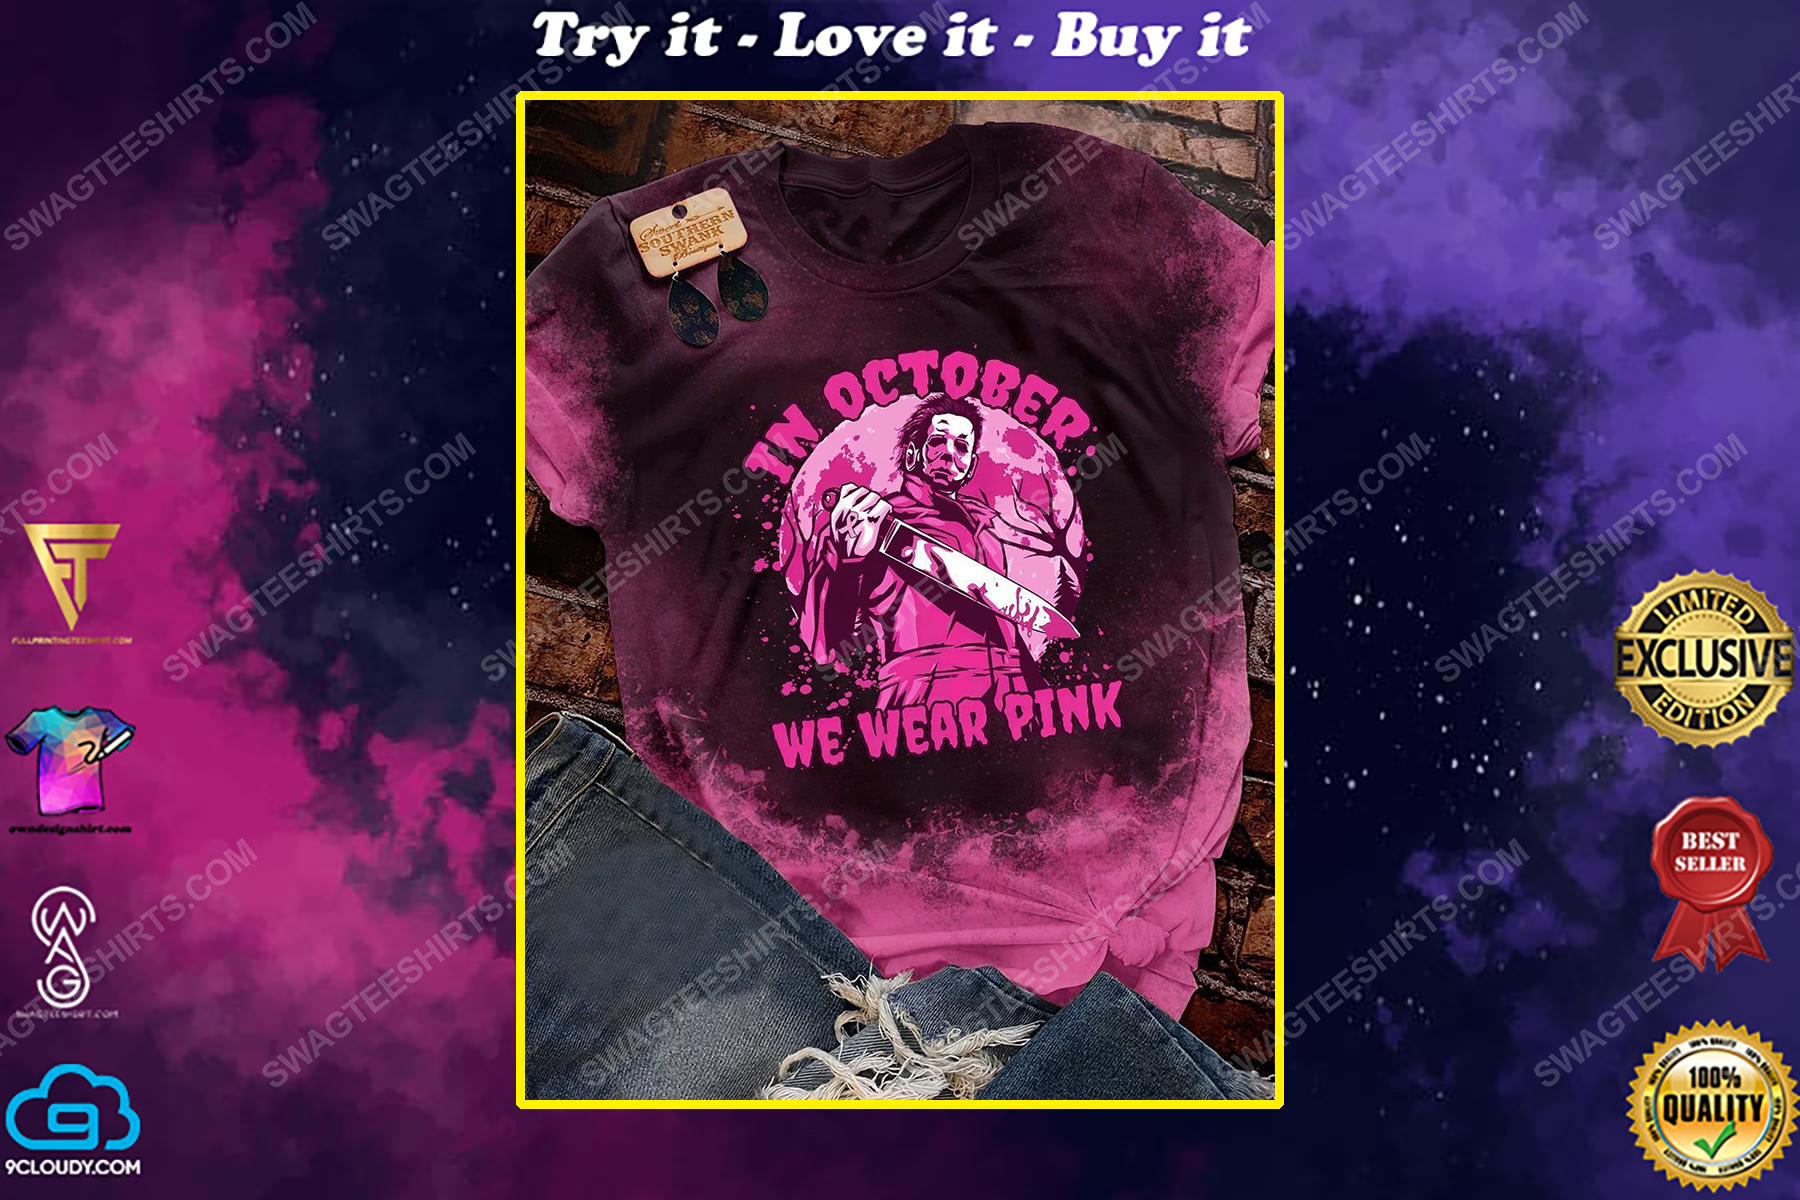 Breast cancer in october we wear pink michael myers shirt